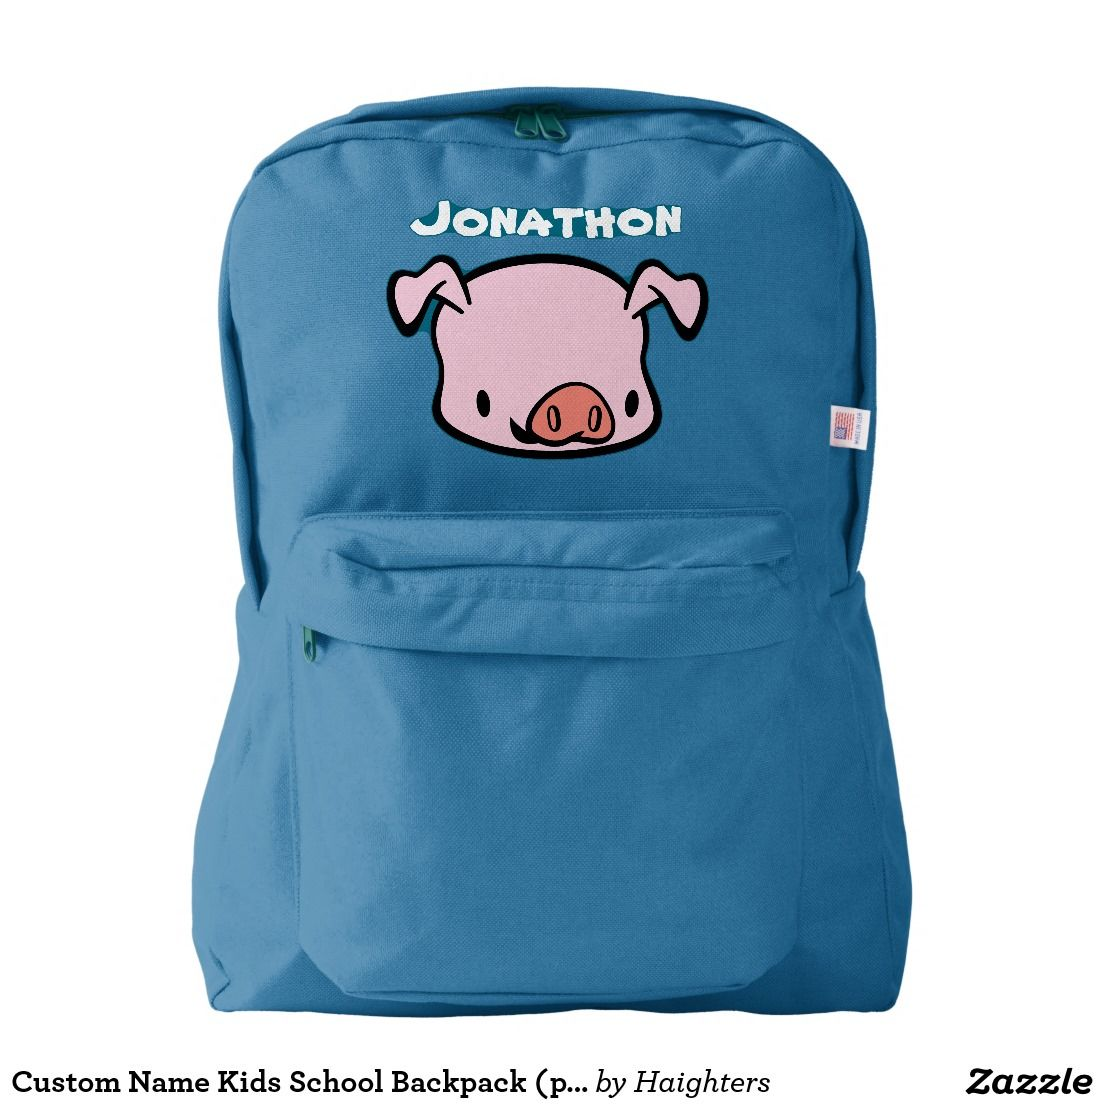 Kids School Backpack (pig). You can customize the name and color! It's a great gift for kids! Make their school days more fun.